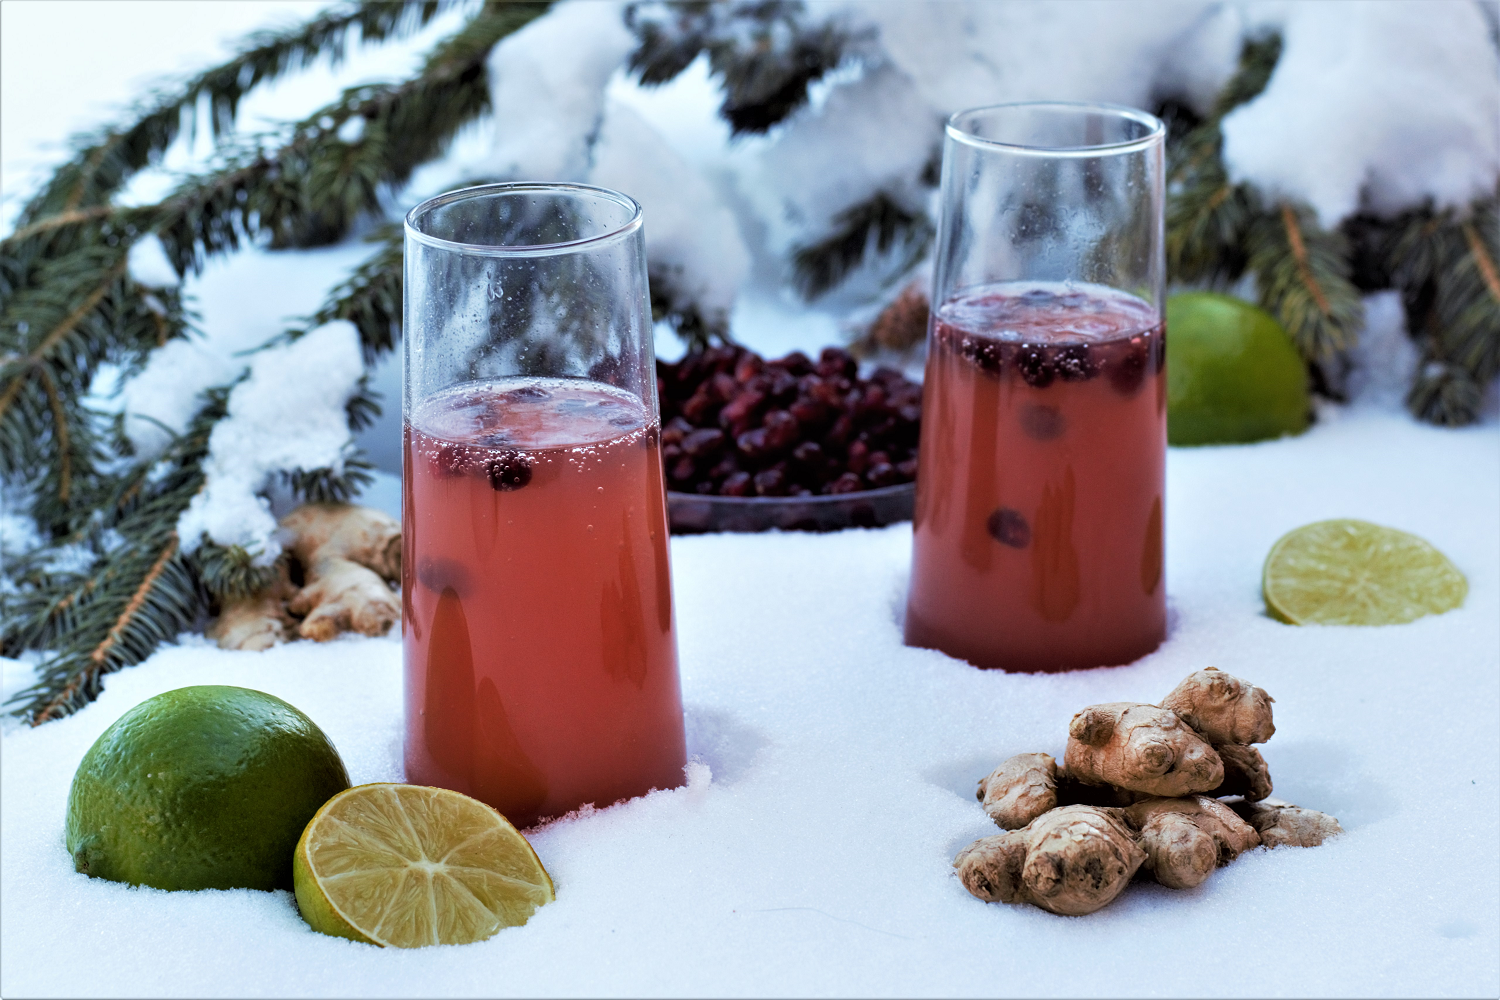 Putting an upscale twist on the classic mule by muddling fresh ginger with bright, fruity pomegranate juice and topping it off with champagne!